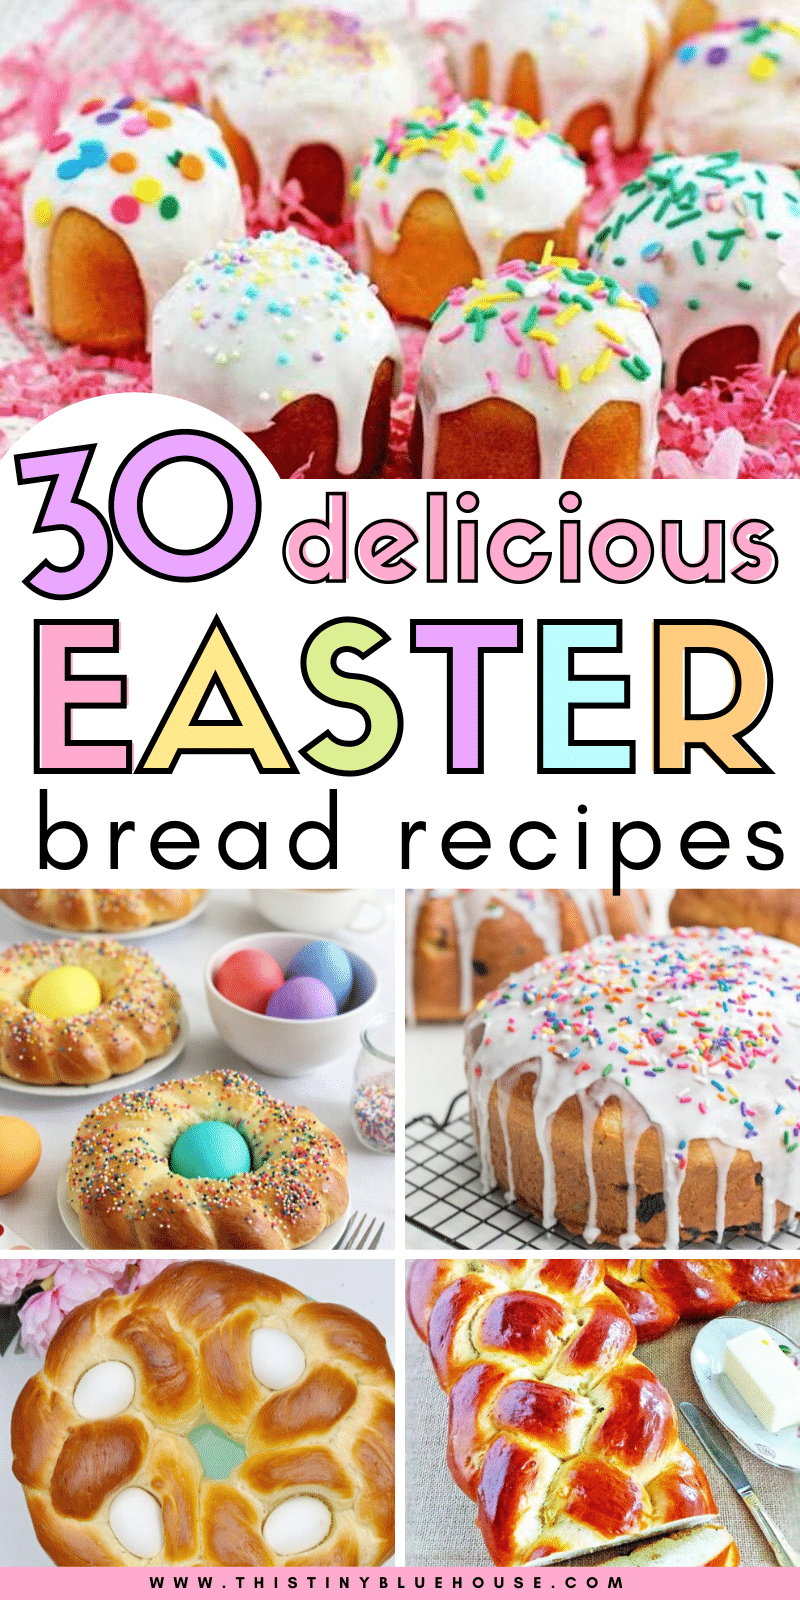 Make Easter extra special this year with one of these 30 delicious and easy Easter bread recipes. #easterbread #easyeasterbreaf #besteasterbread #easterbreadrecipe #easyeasterbreadrecipe #classiceasterbread